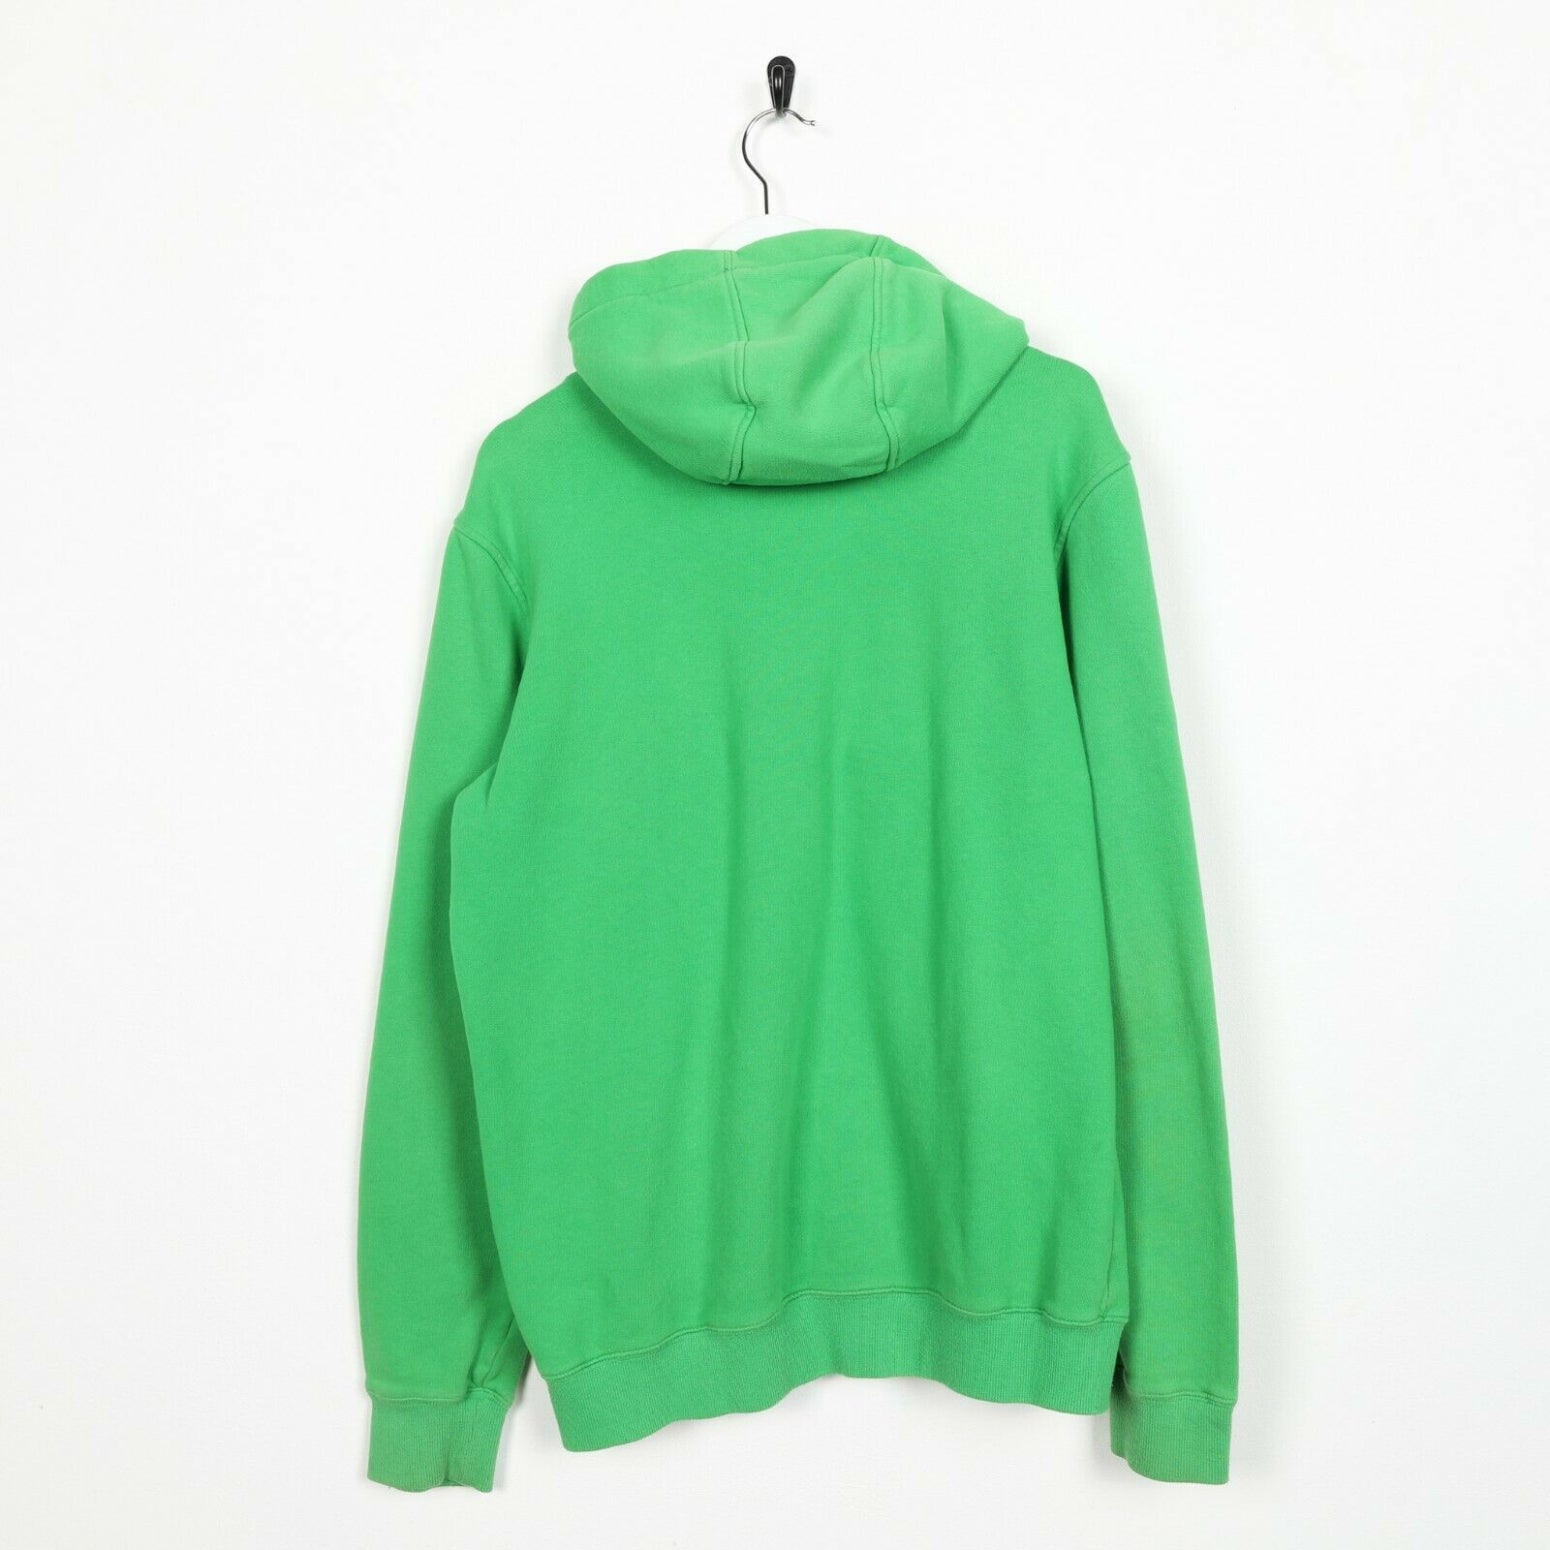 Vintage ADIDAS Big Logo Hoodie Sweatshirt Green | Small S